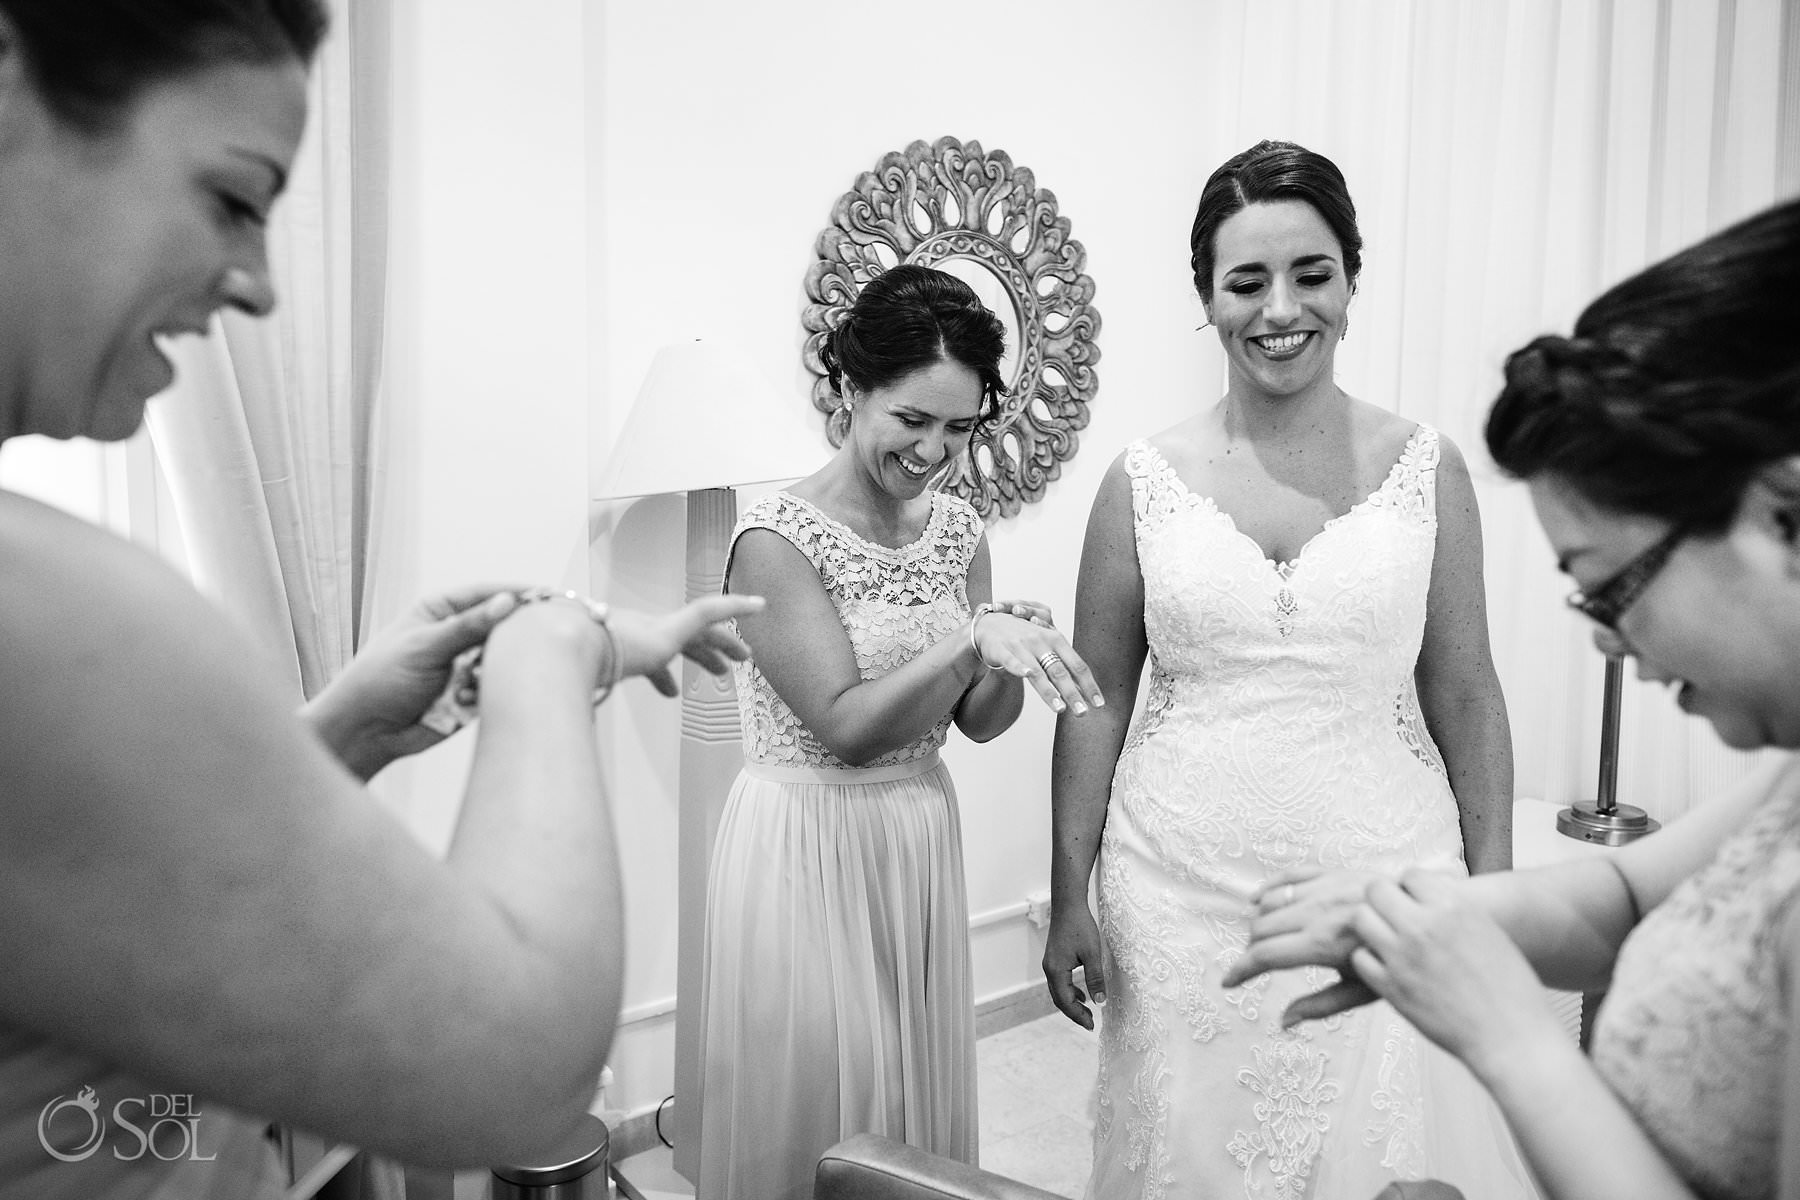 Dreams Tulum Suit bridal party gift ideas black and white photo